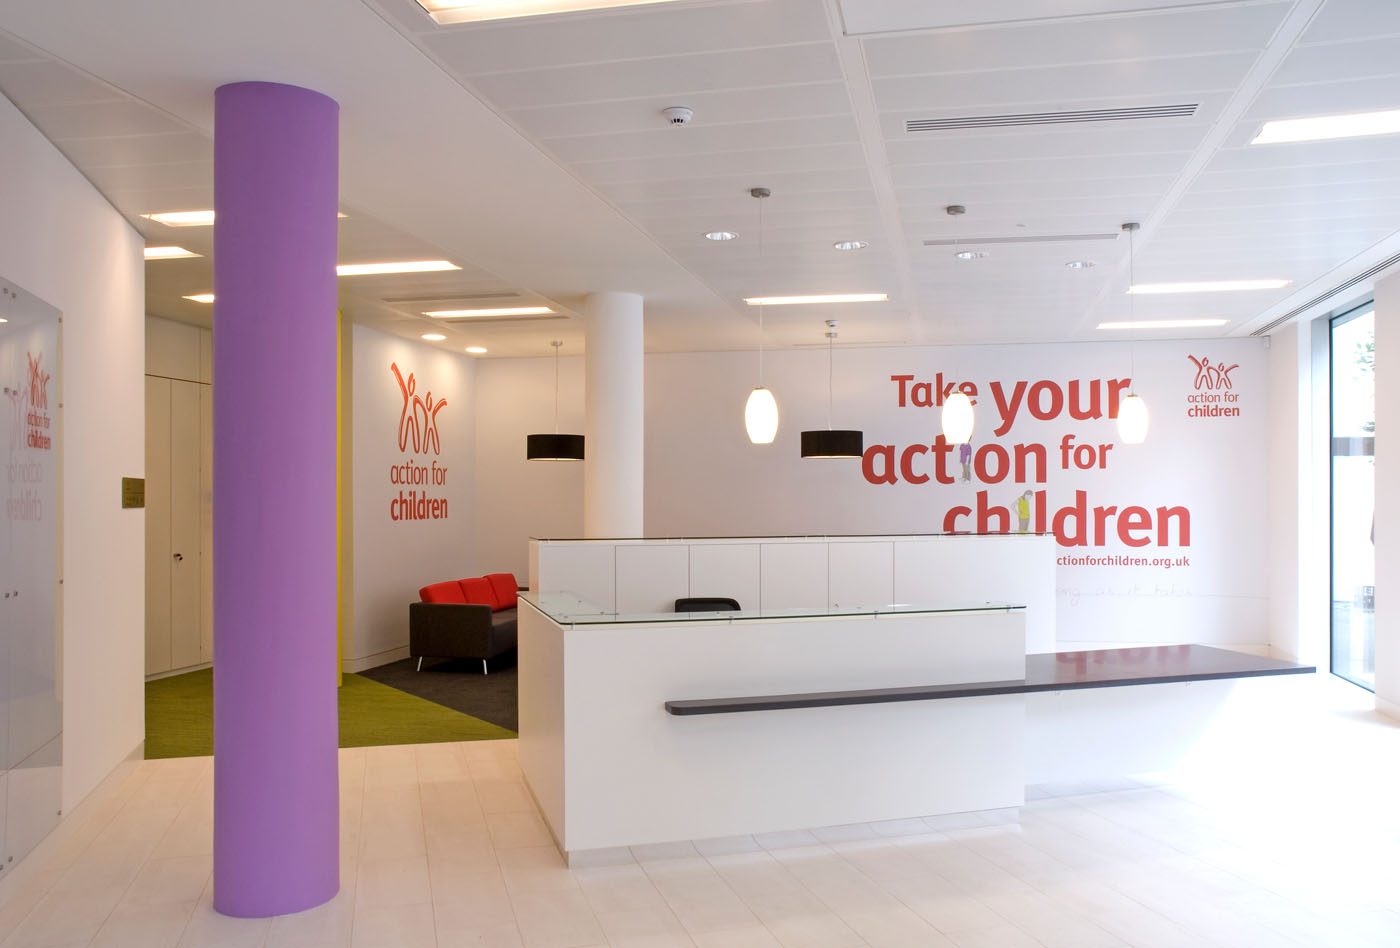 Workspace Design - Action for Children (1)